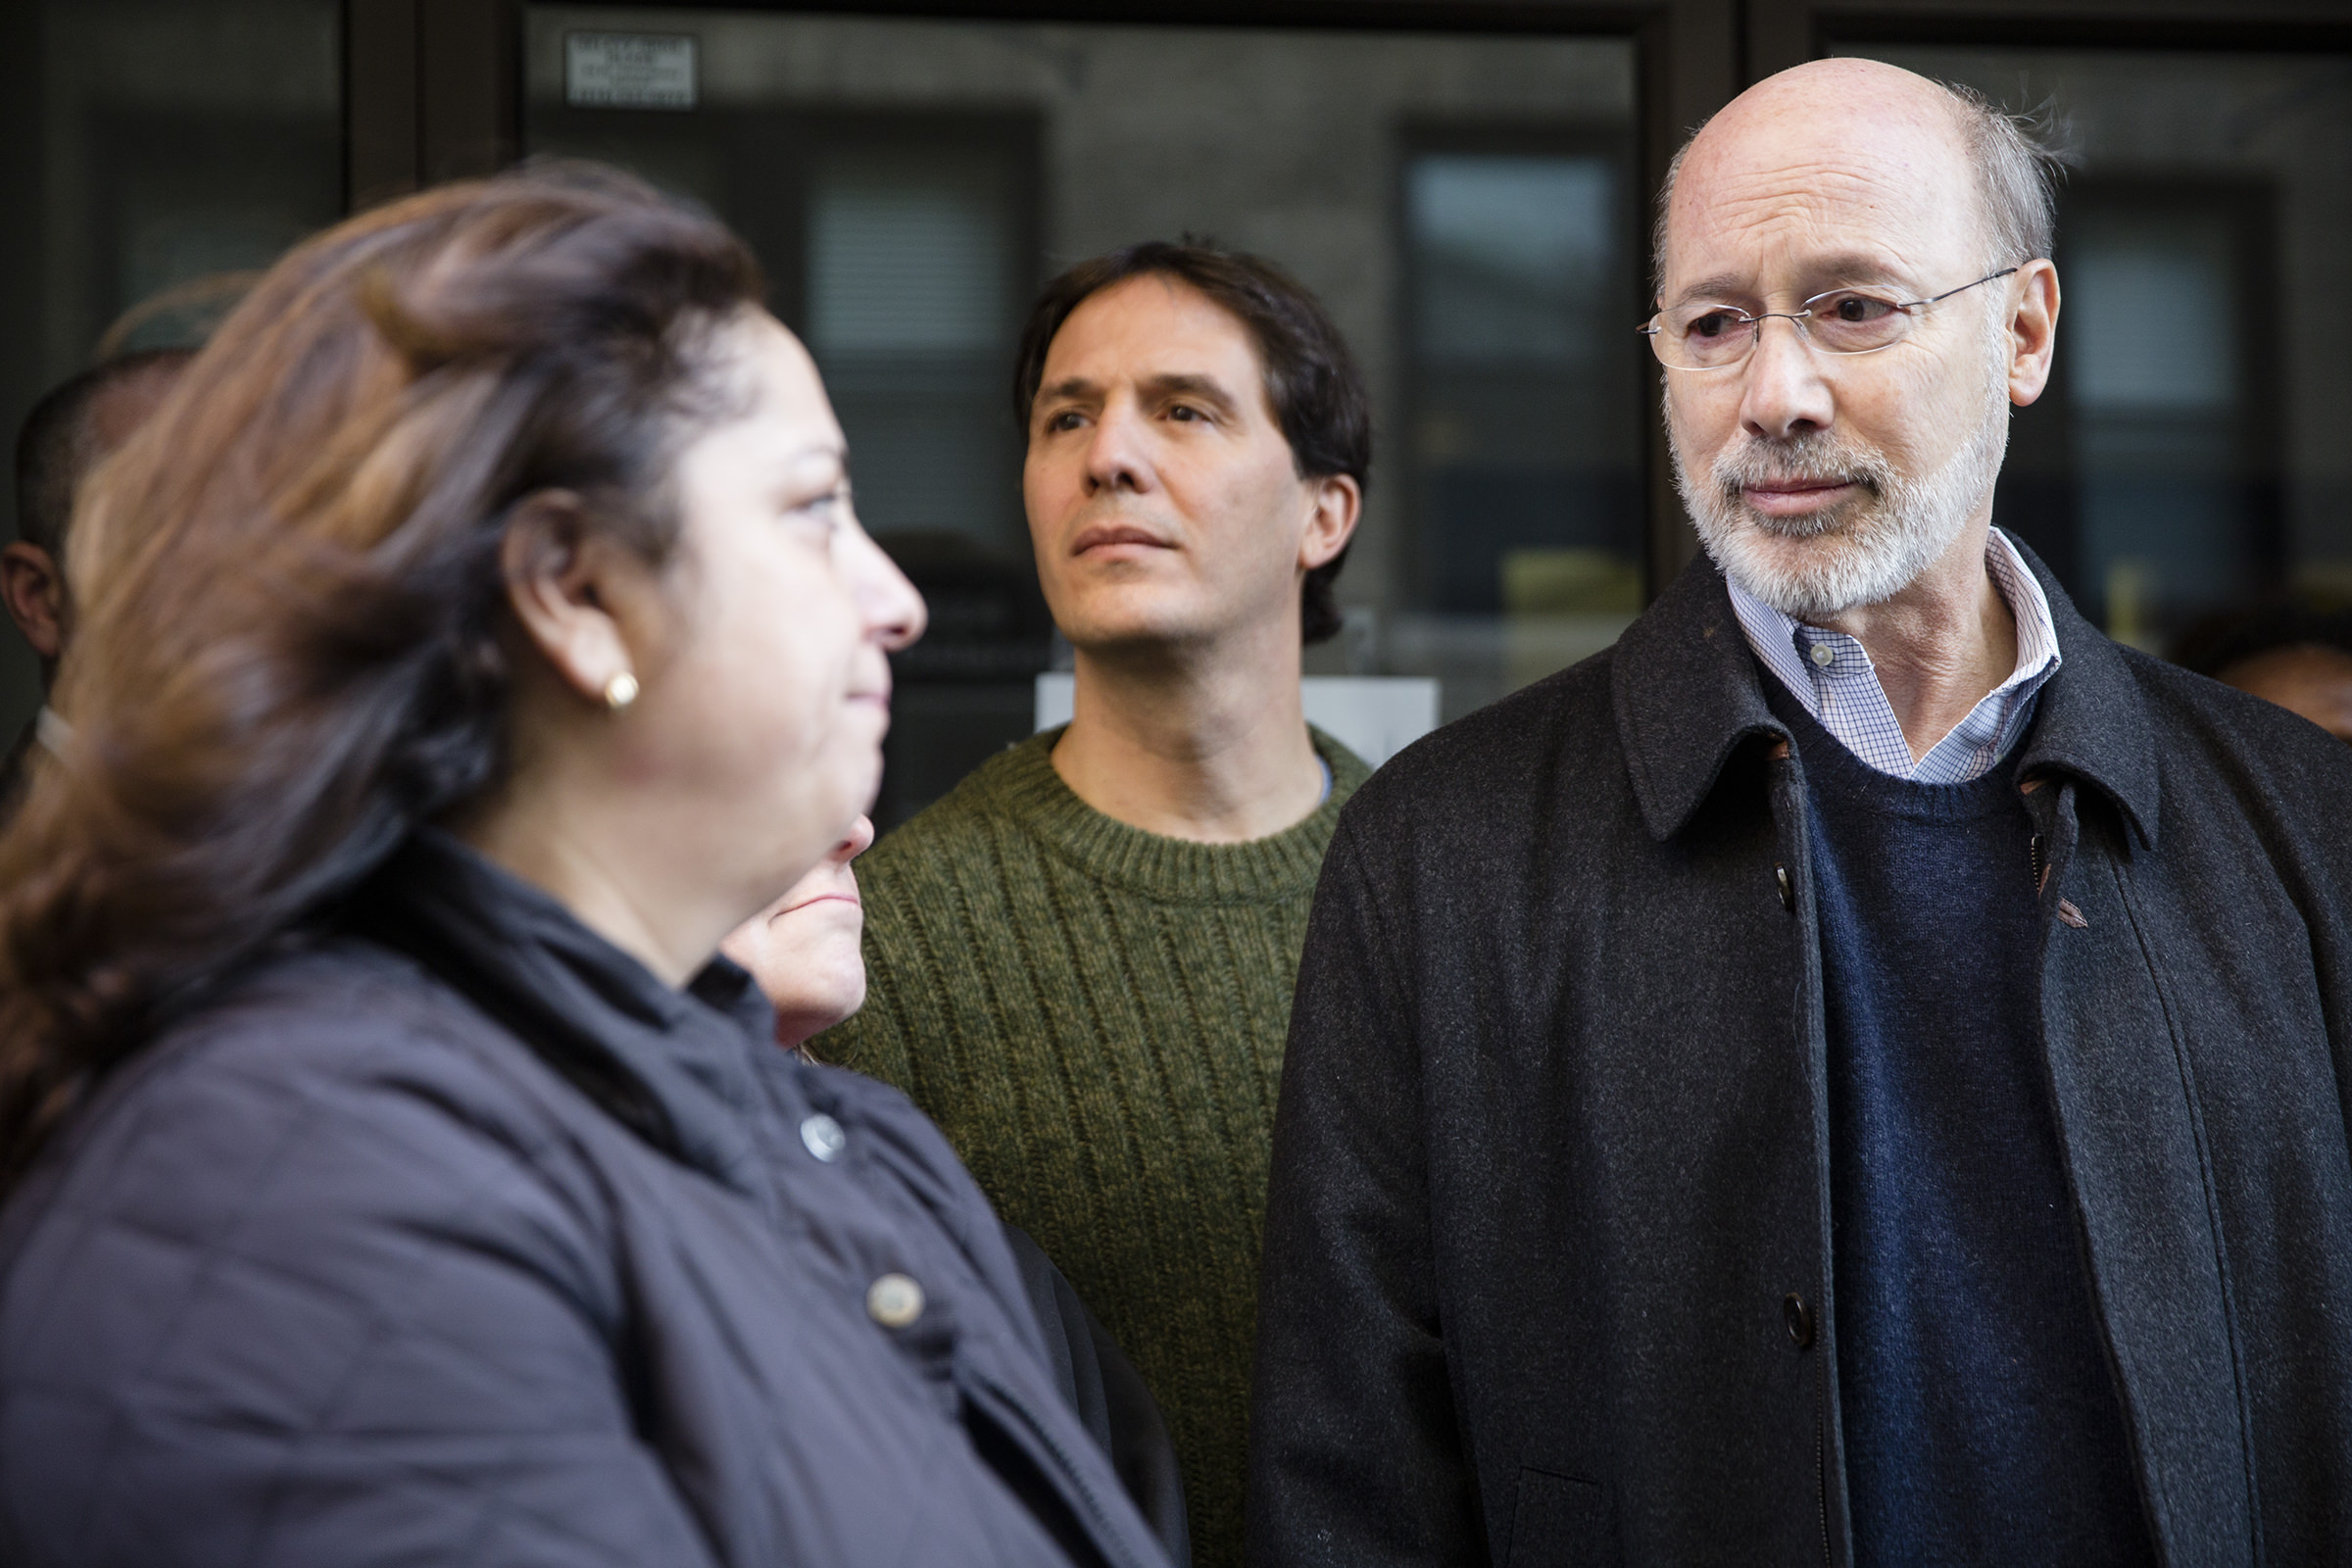 Photo of Governor Wolf and Mrs. Assali, family member of legal immigrants detained and sent back